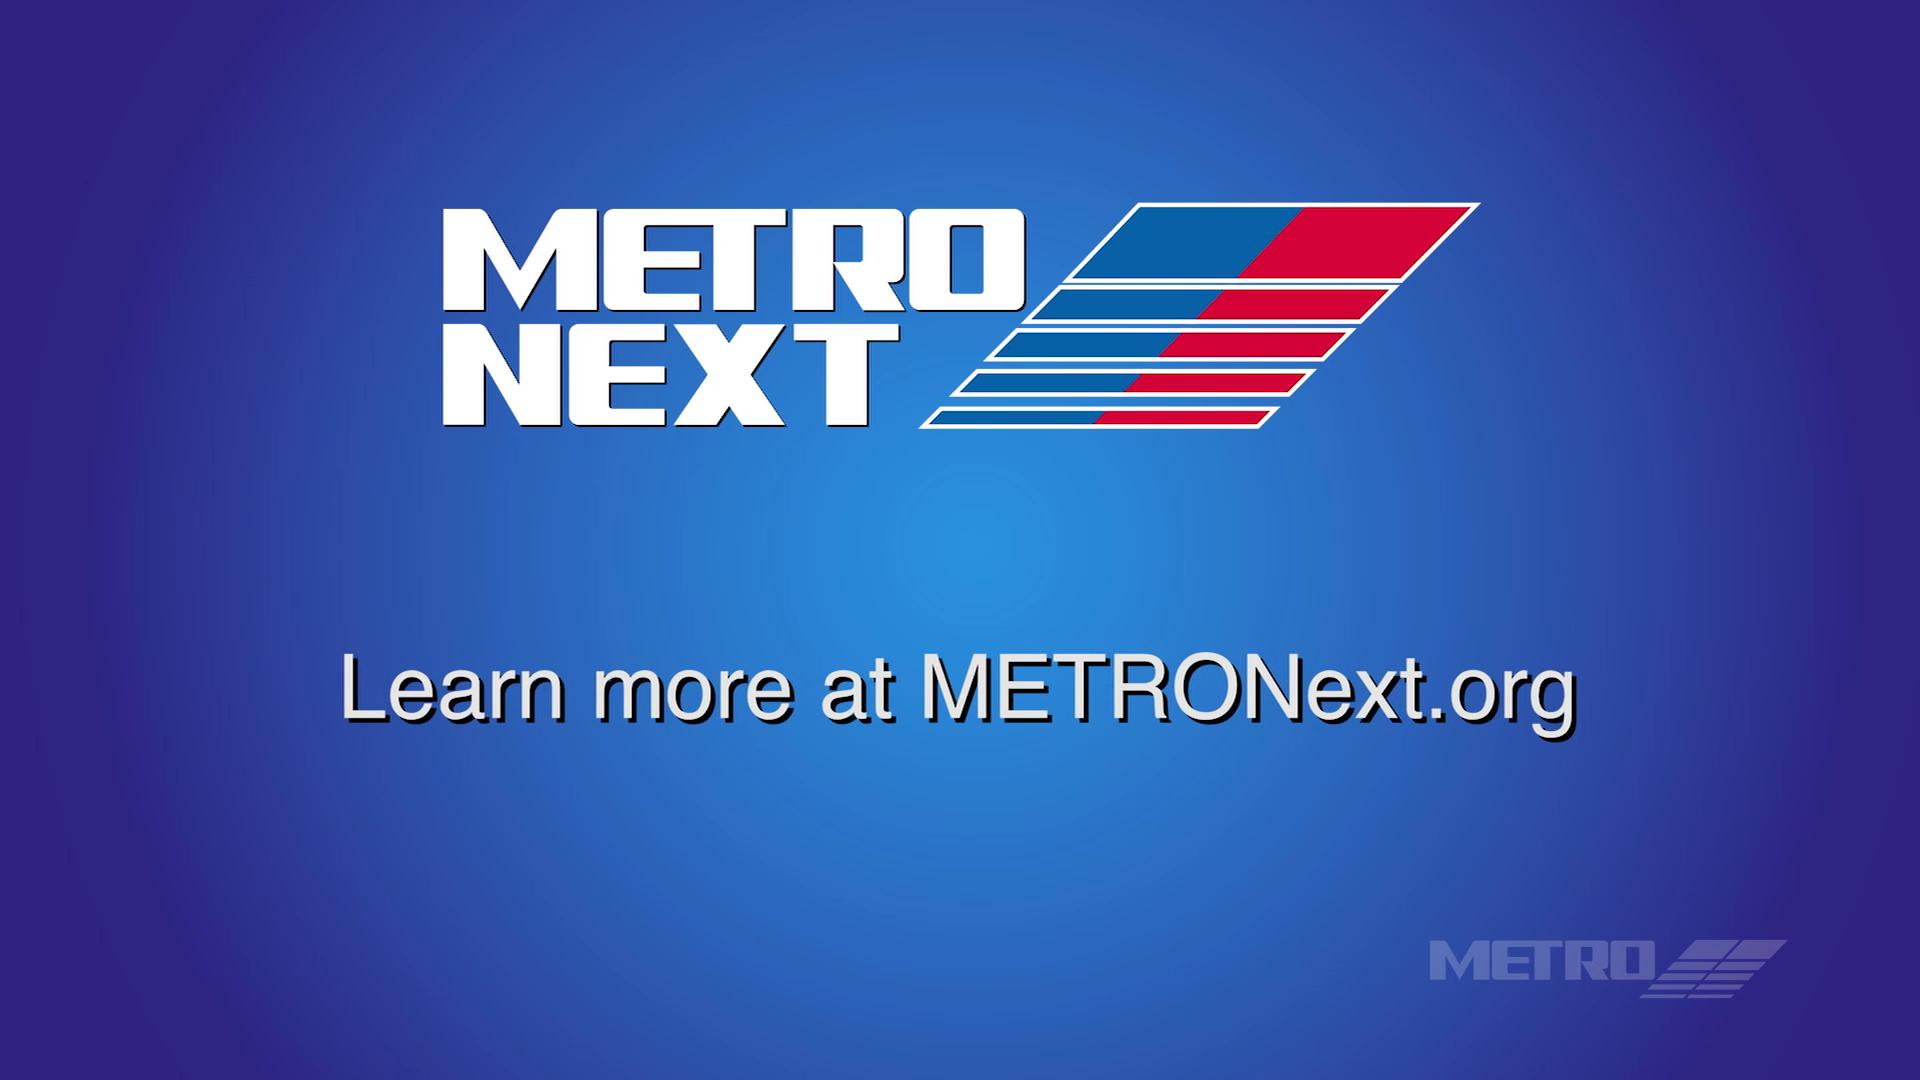 METRO Home on metro north schedule, fc barcelona schedule, metro time schedule, metro bus schedule,